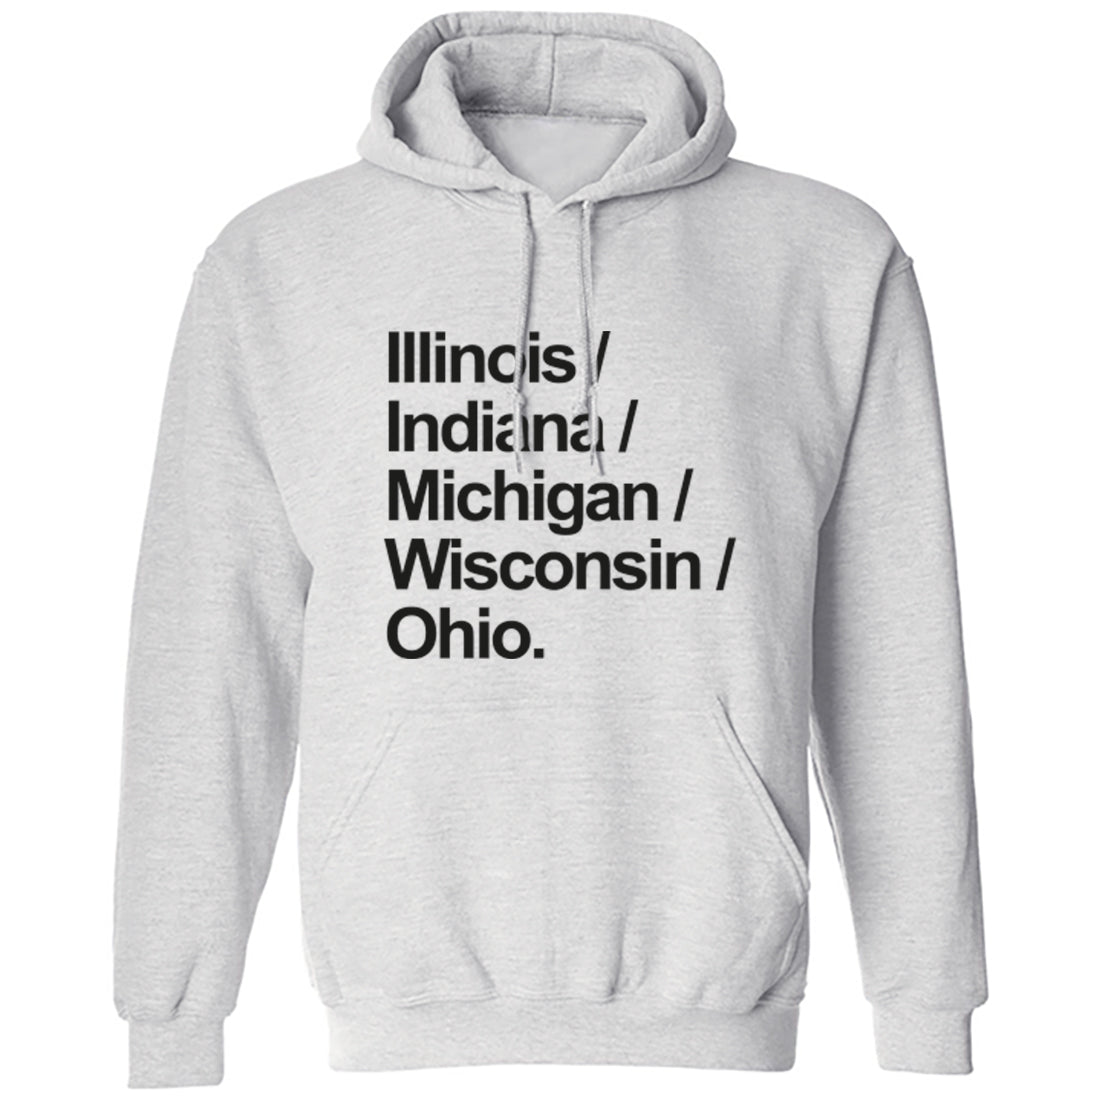 Mid West American States Division 3 Unisex Hoodie K1134 - Illustrated Identity Ltd.